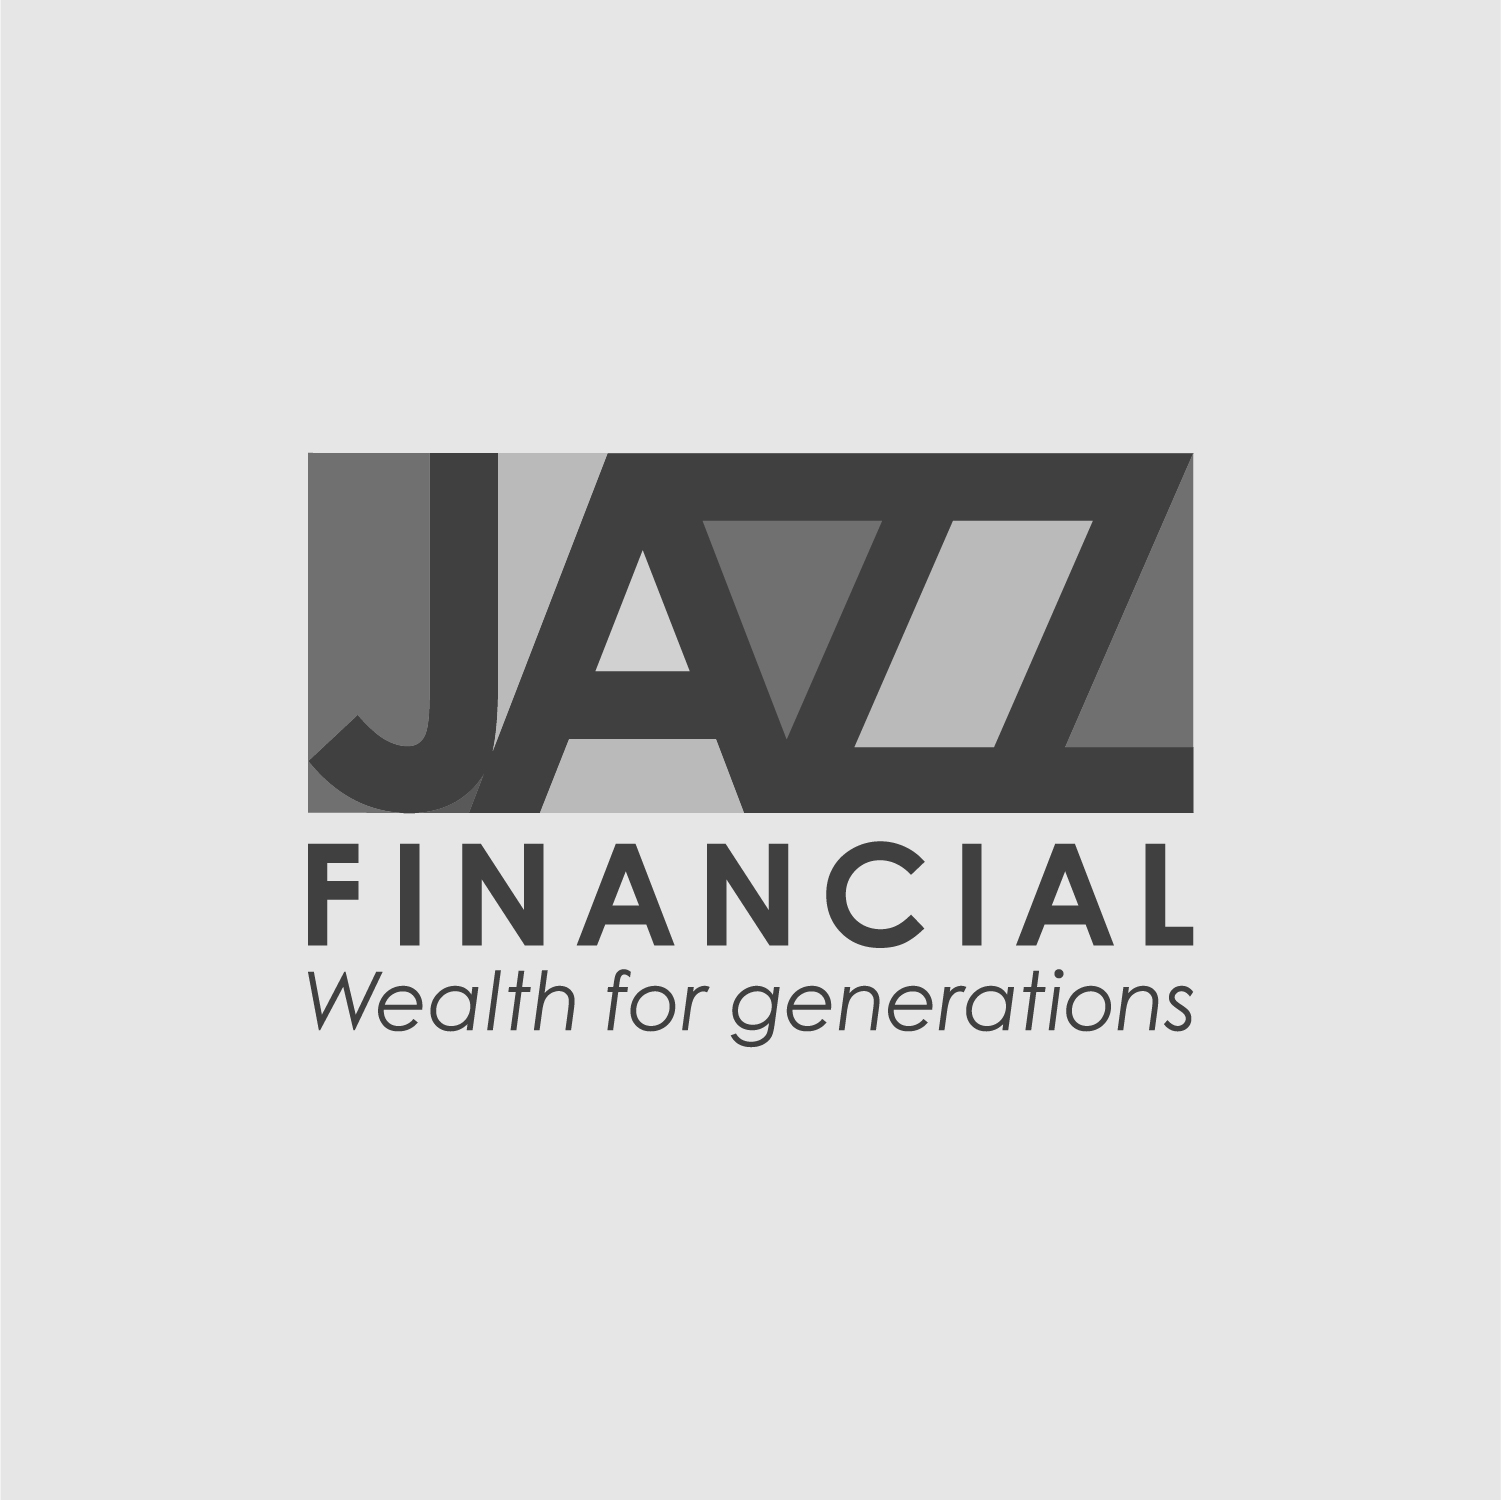 Simeon-Goa_Victoria-Canada_Graphic-Logo-Design_Jazz-Financial.jpg